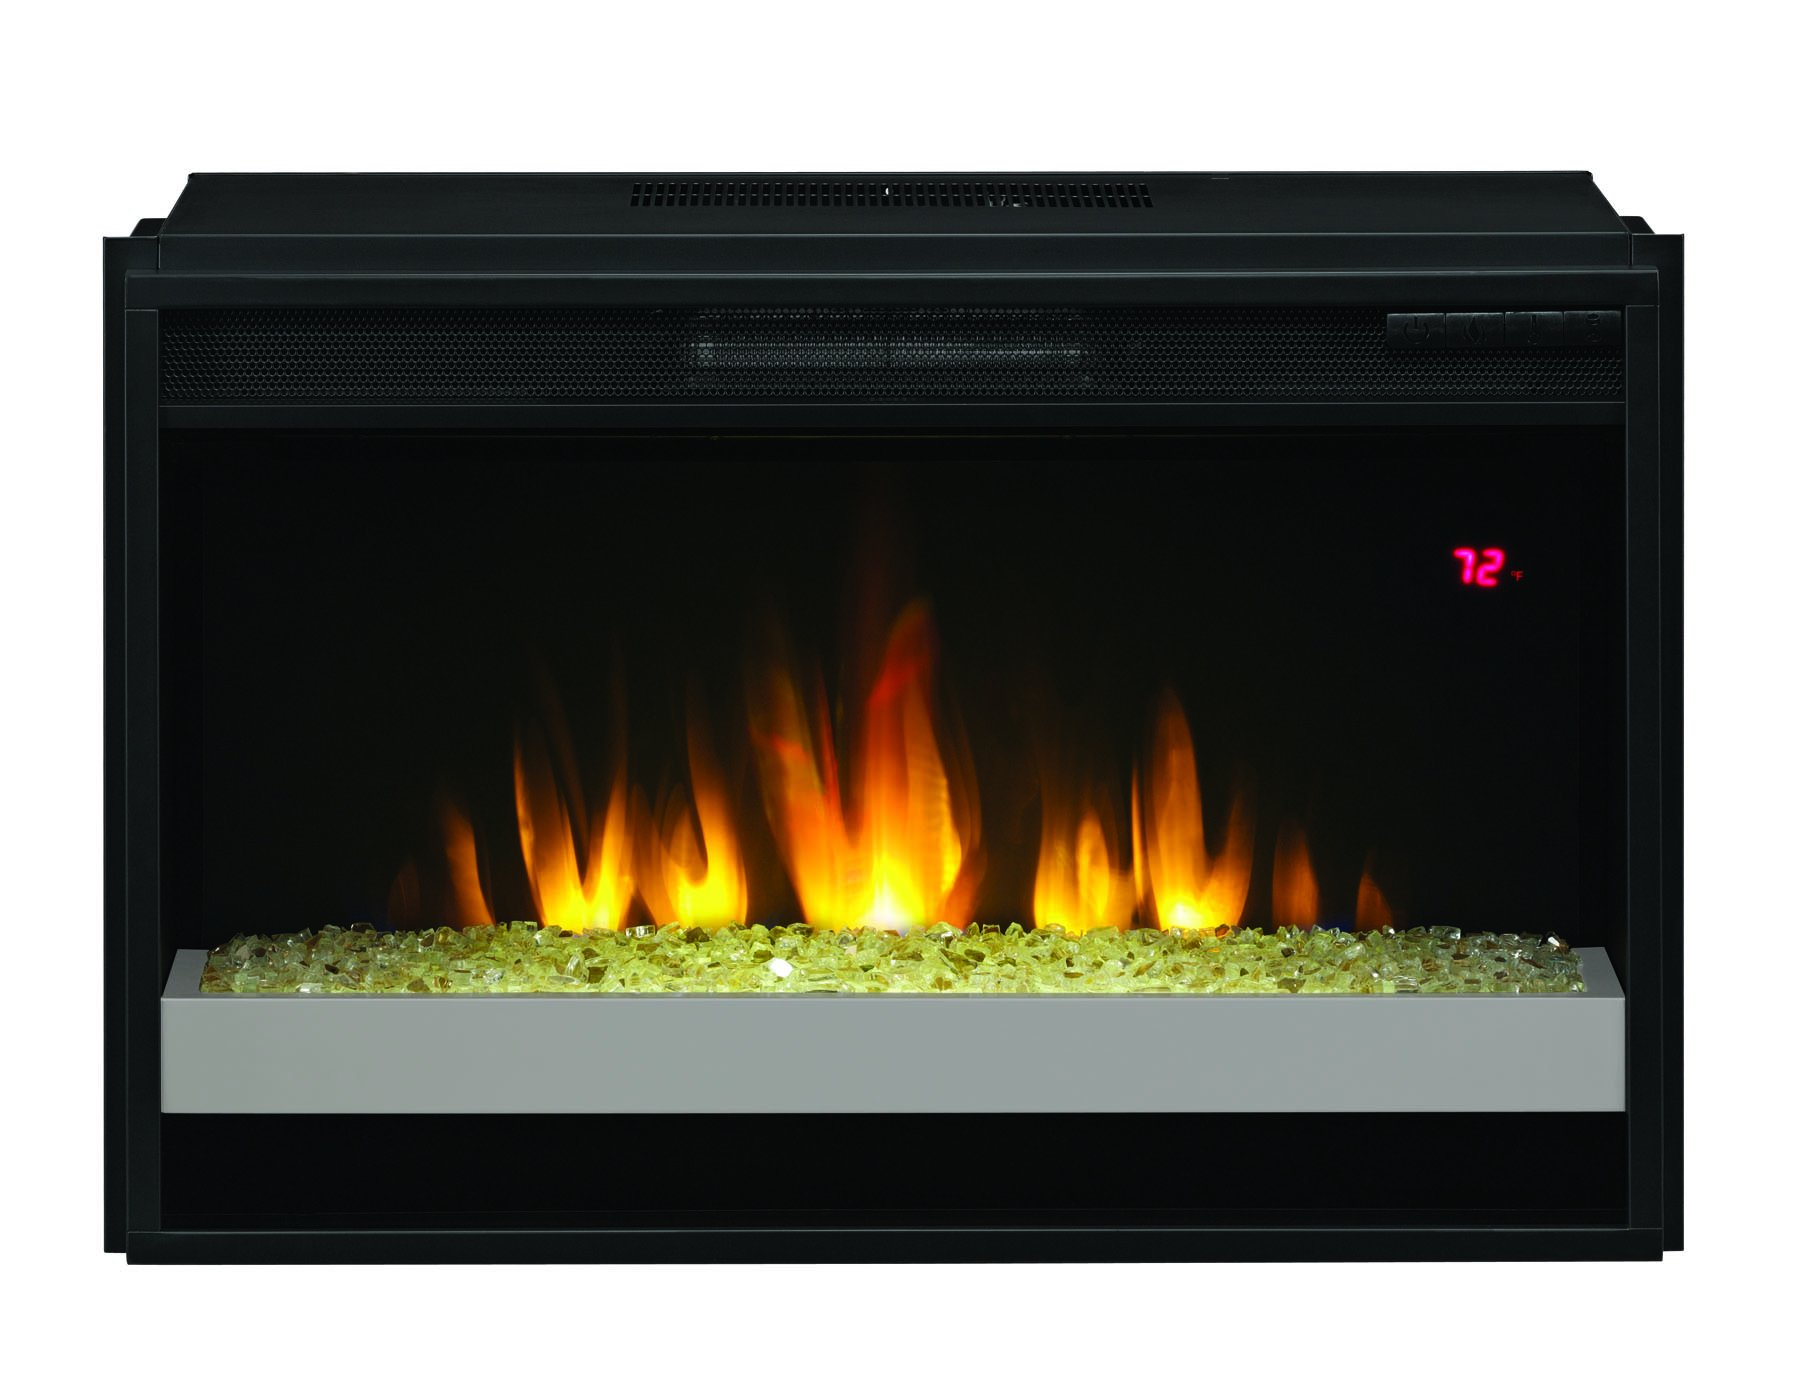 ClassicFlame 26EF023GRG-201 26'' Contemporary Electric Fireplace Insert